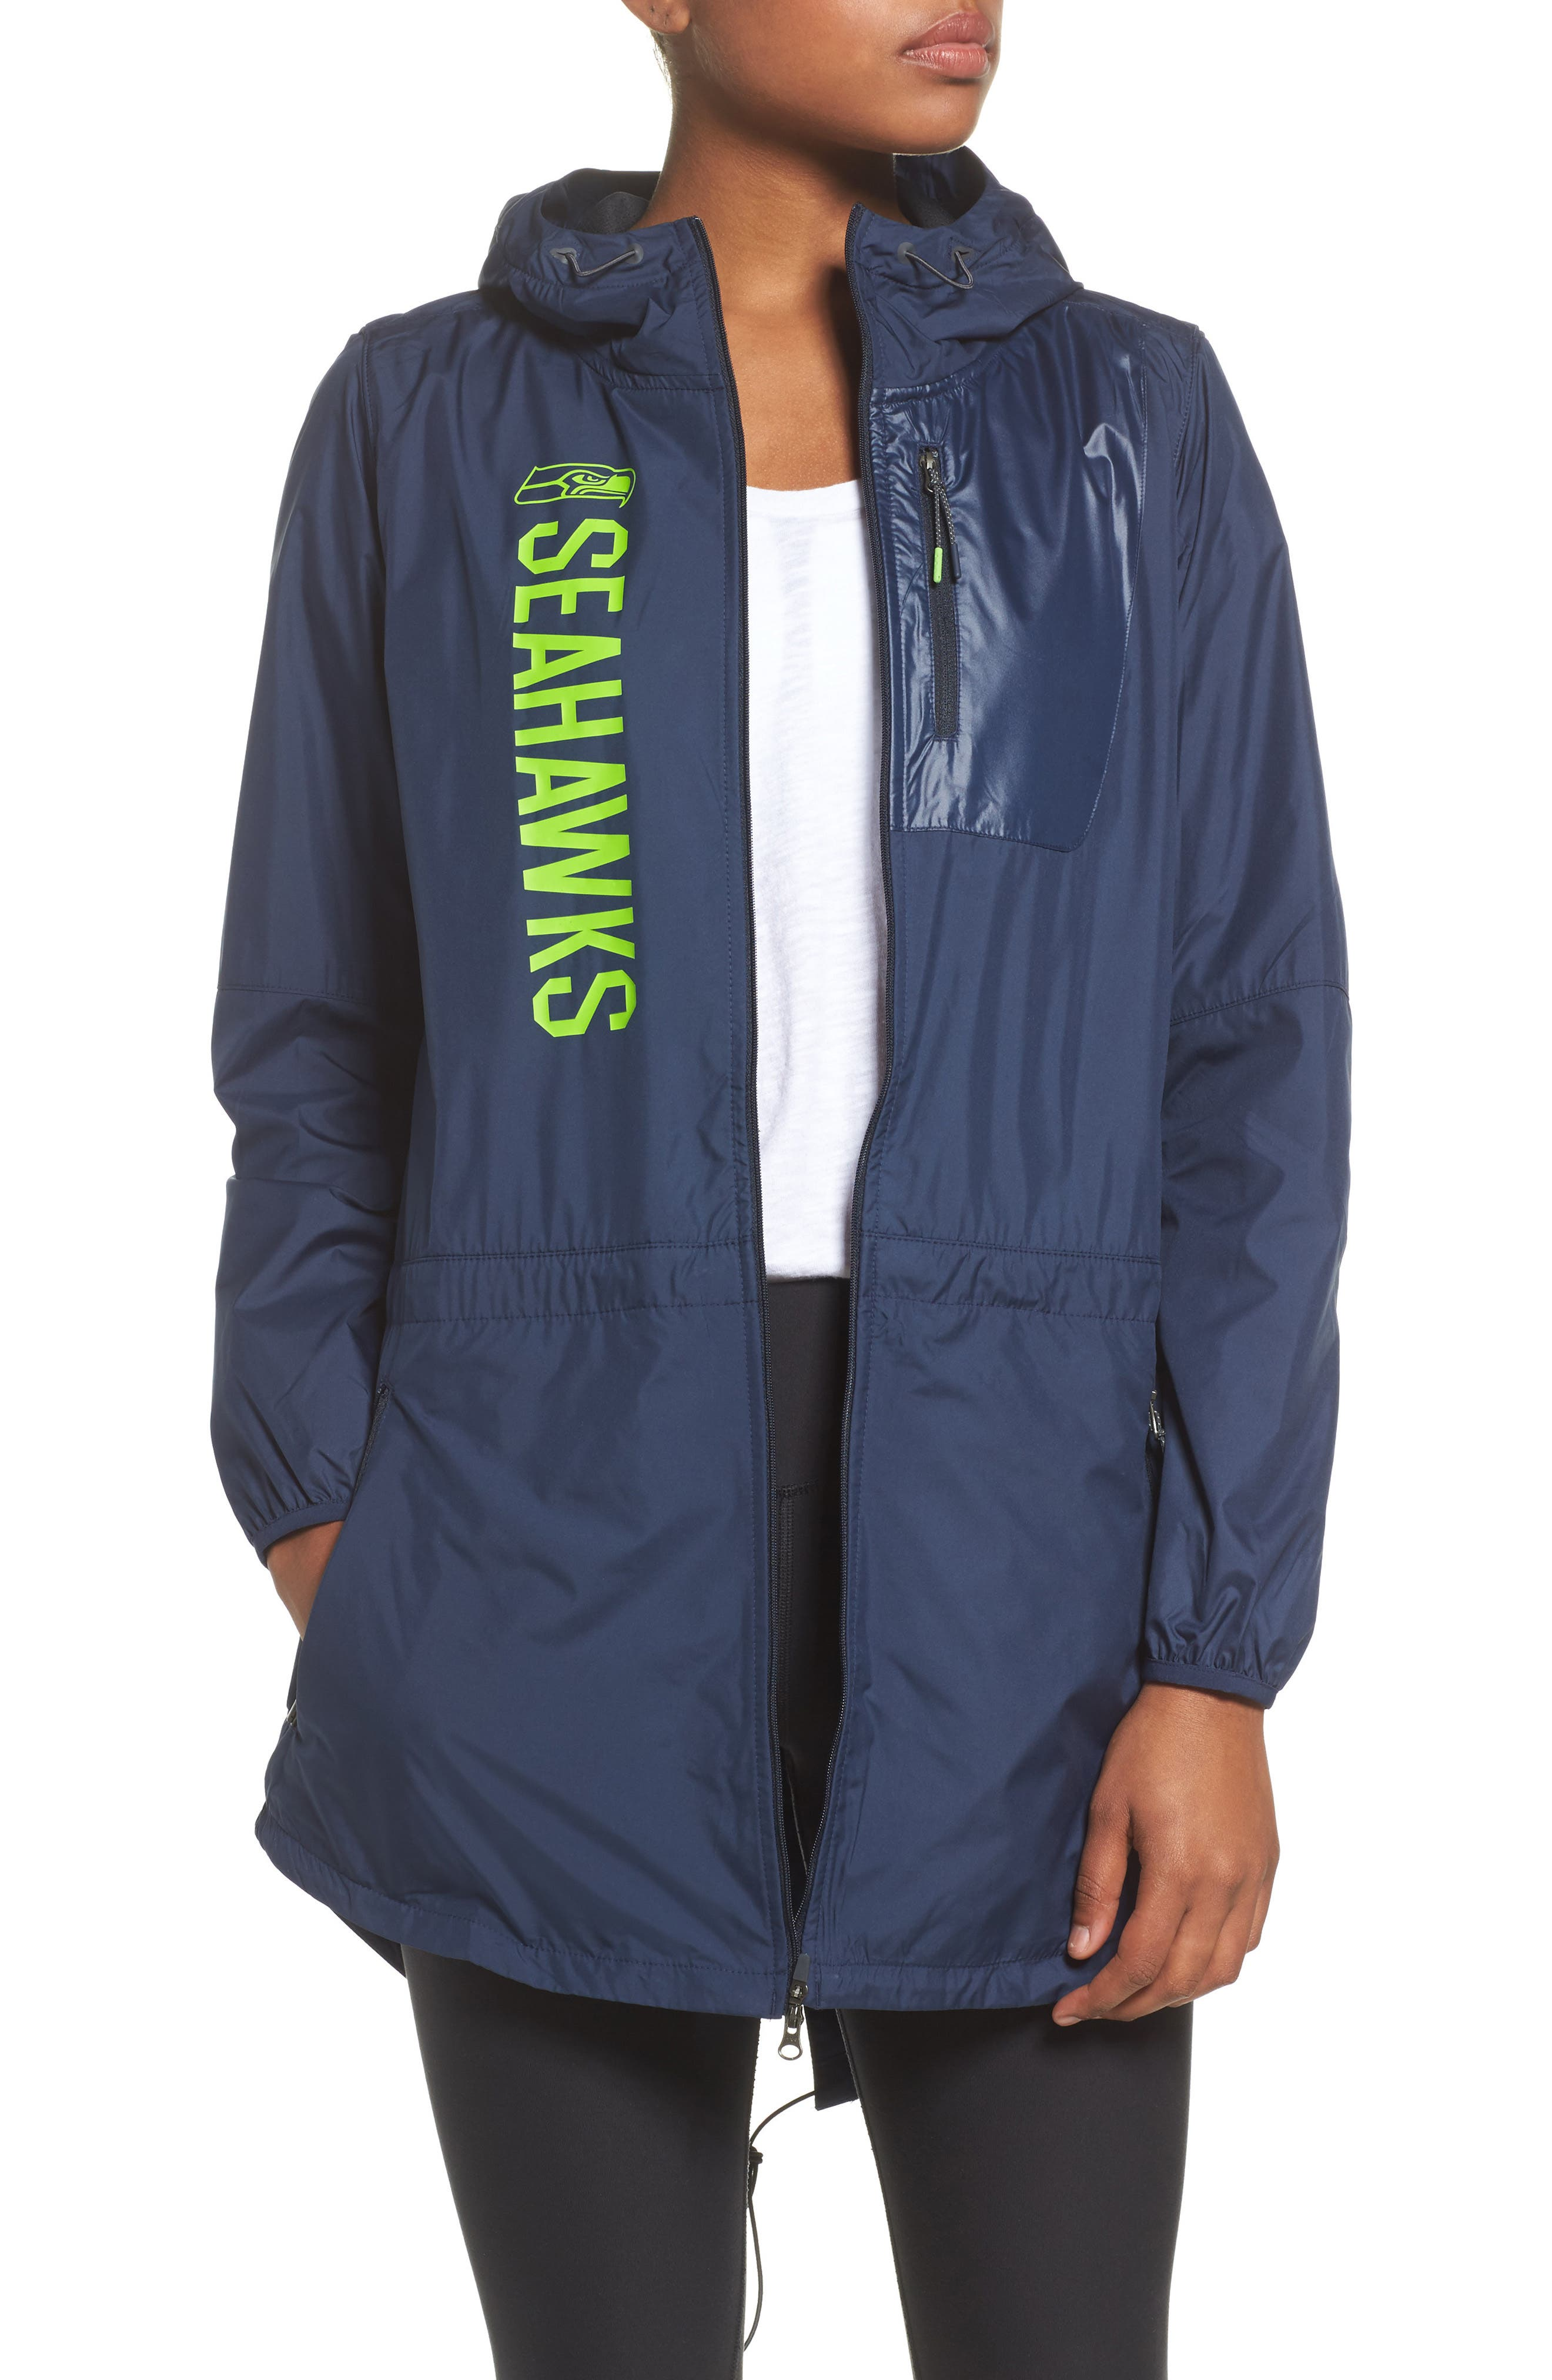 Nike NFL Packable Water Resistant Jacket